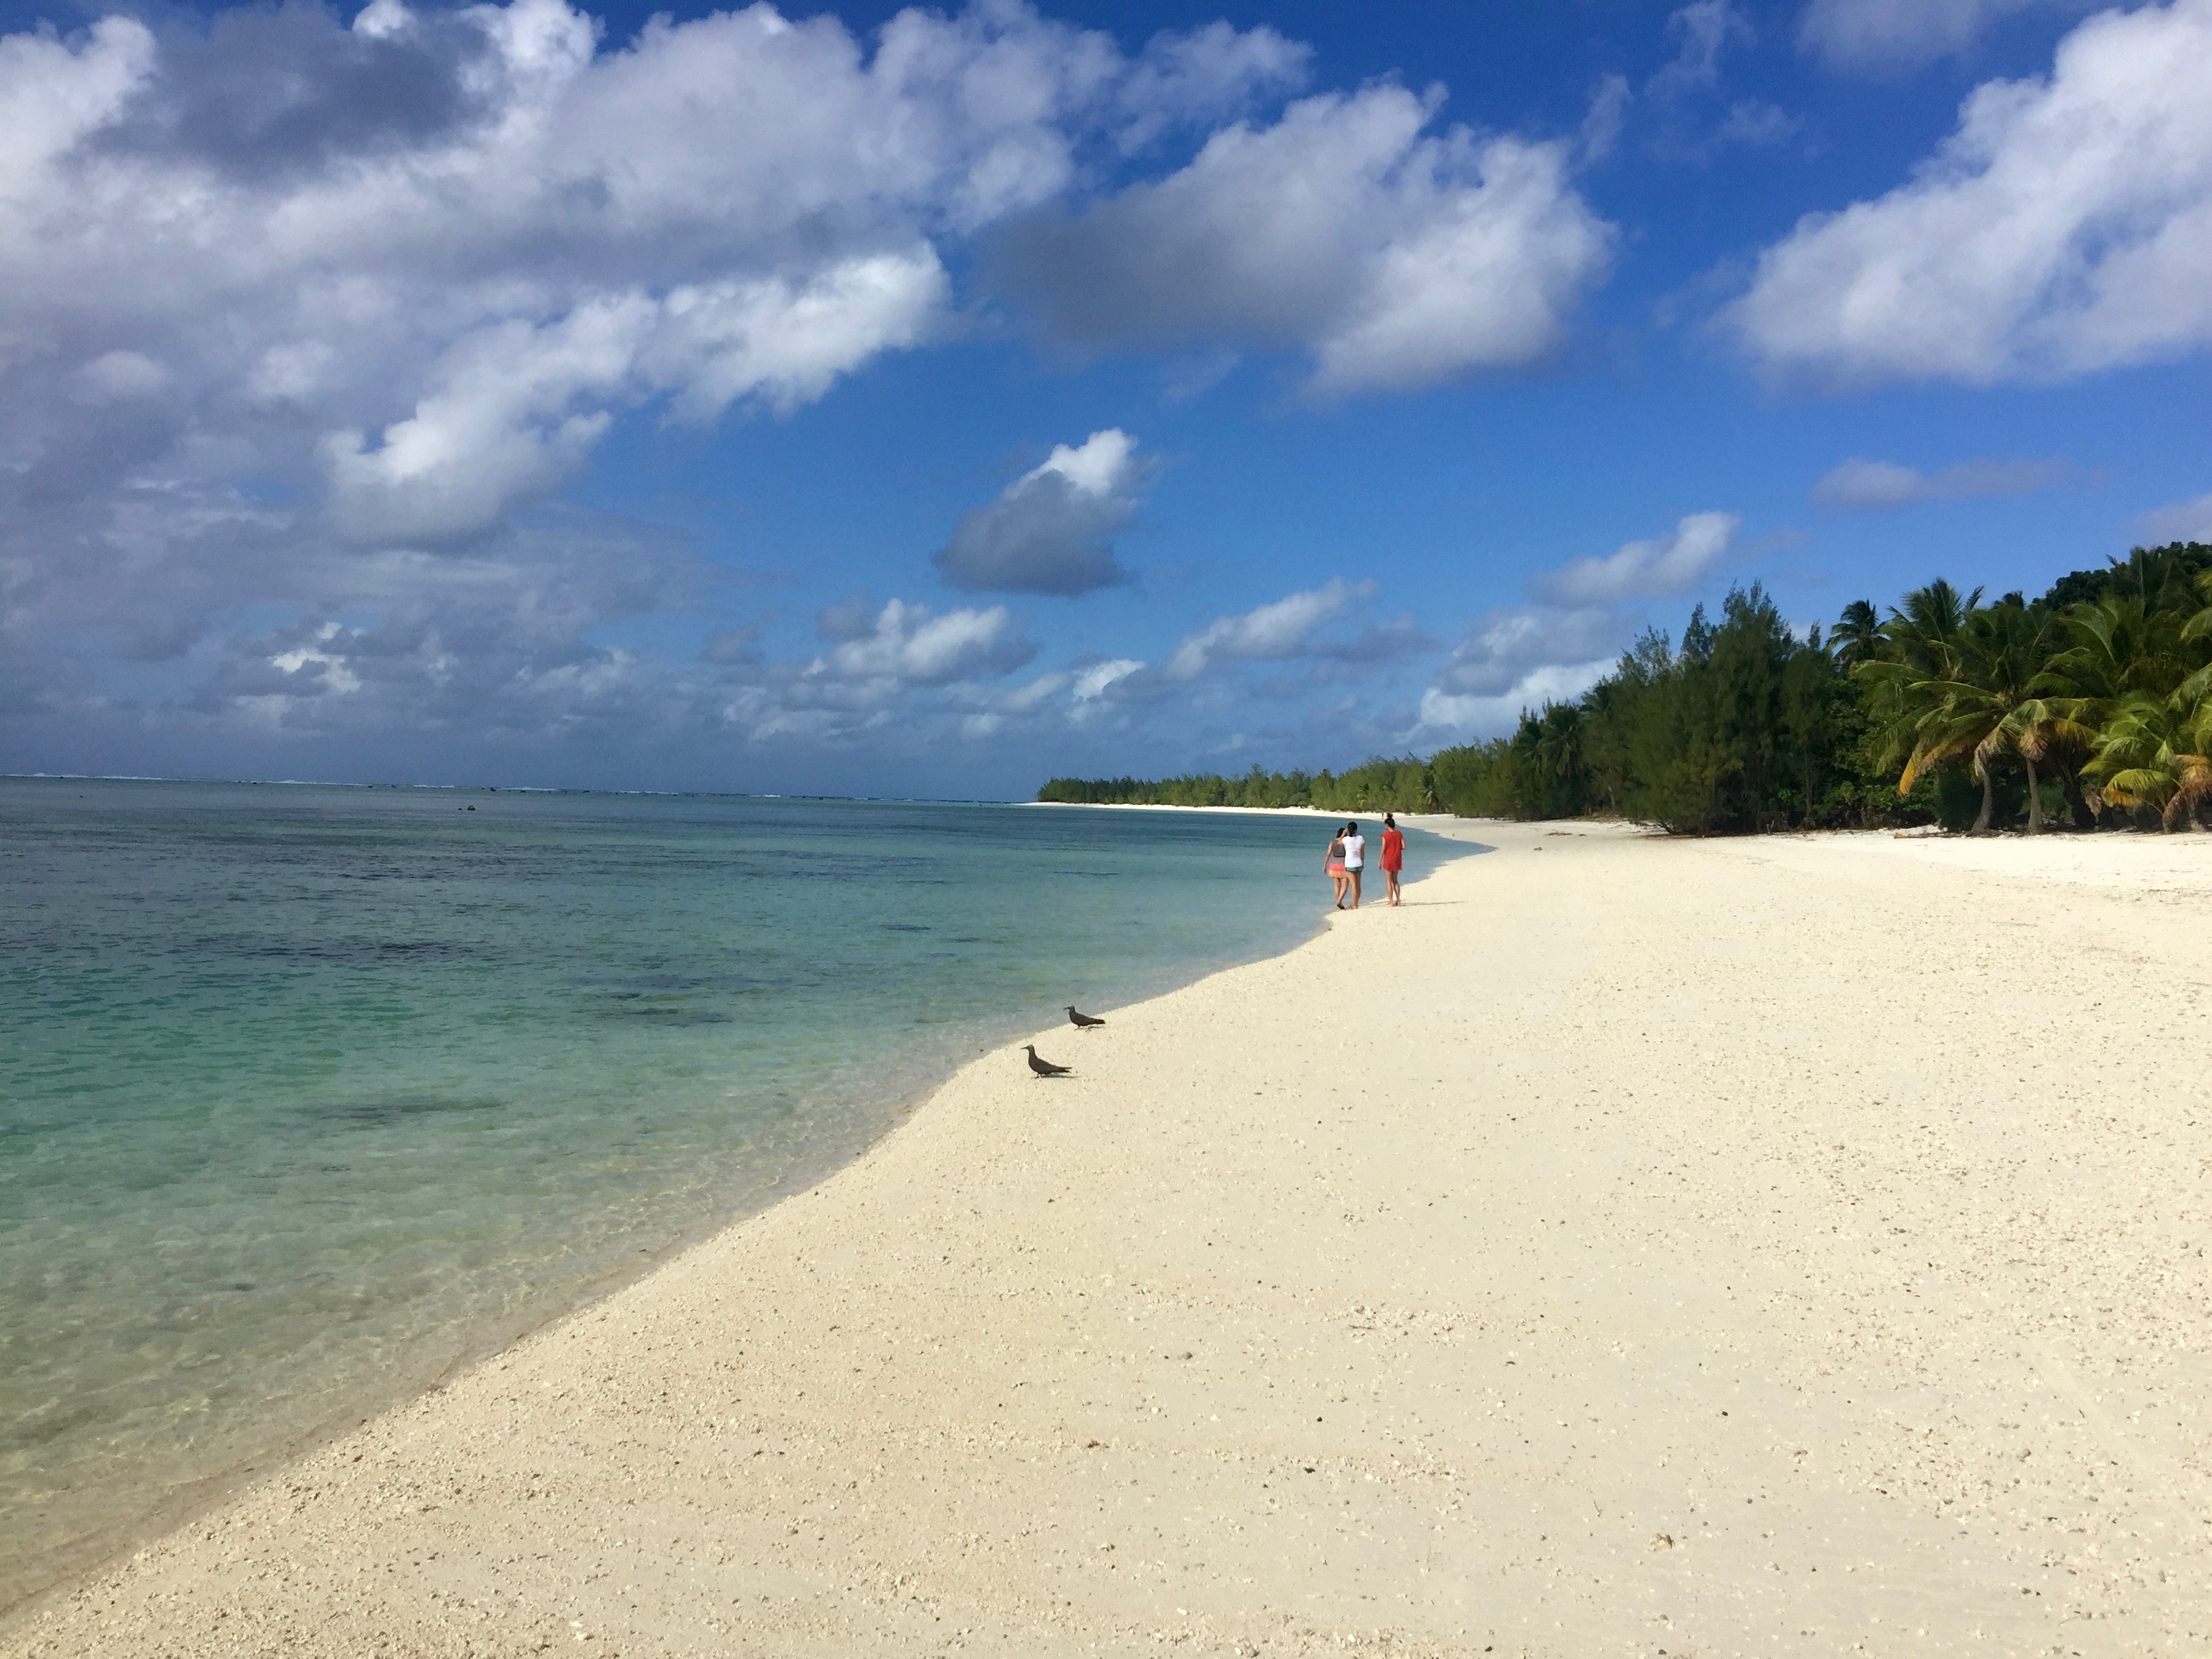 Exploring Aitutaki Atoll in the Cook Islands – Day 1 of 5